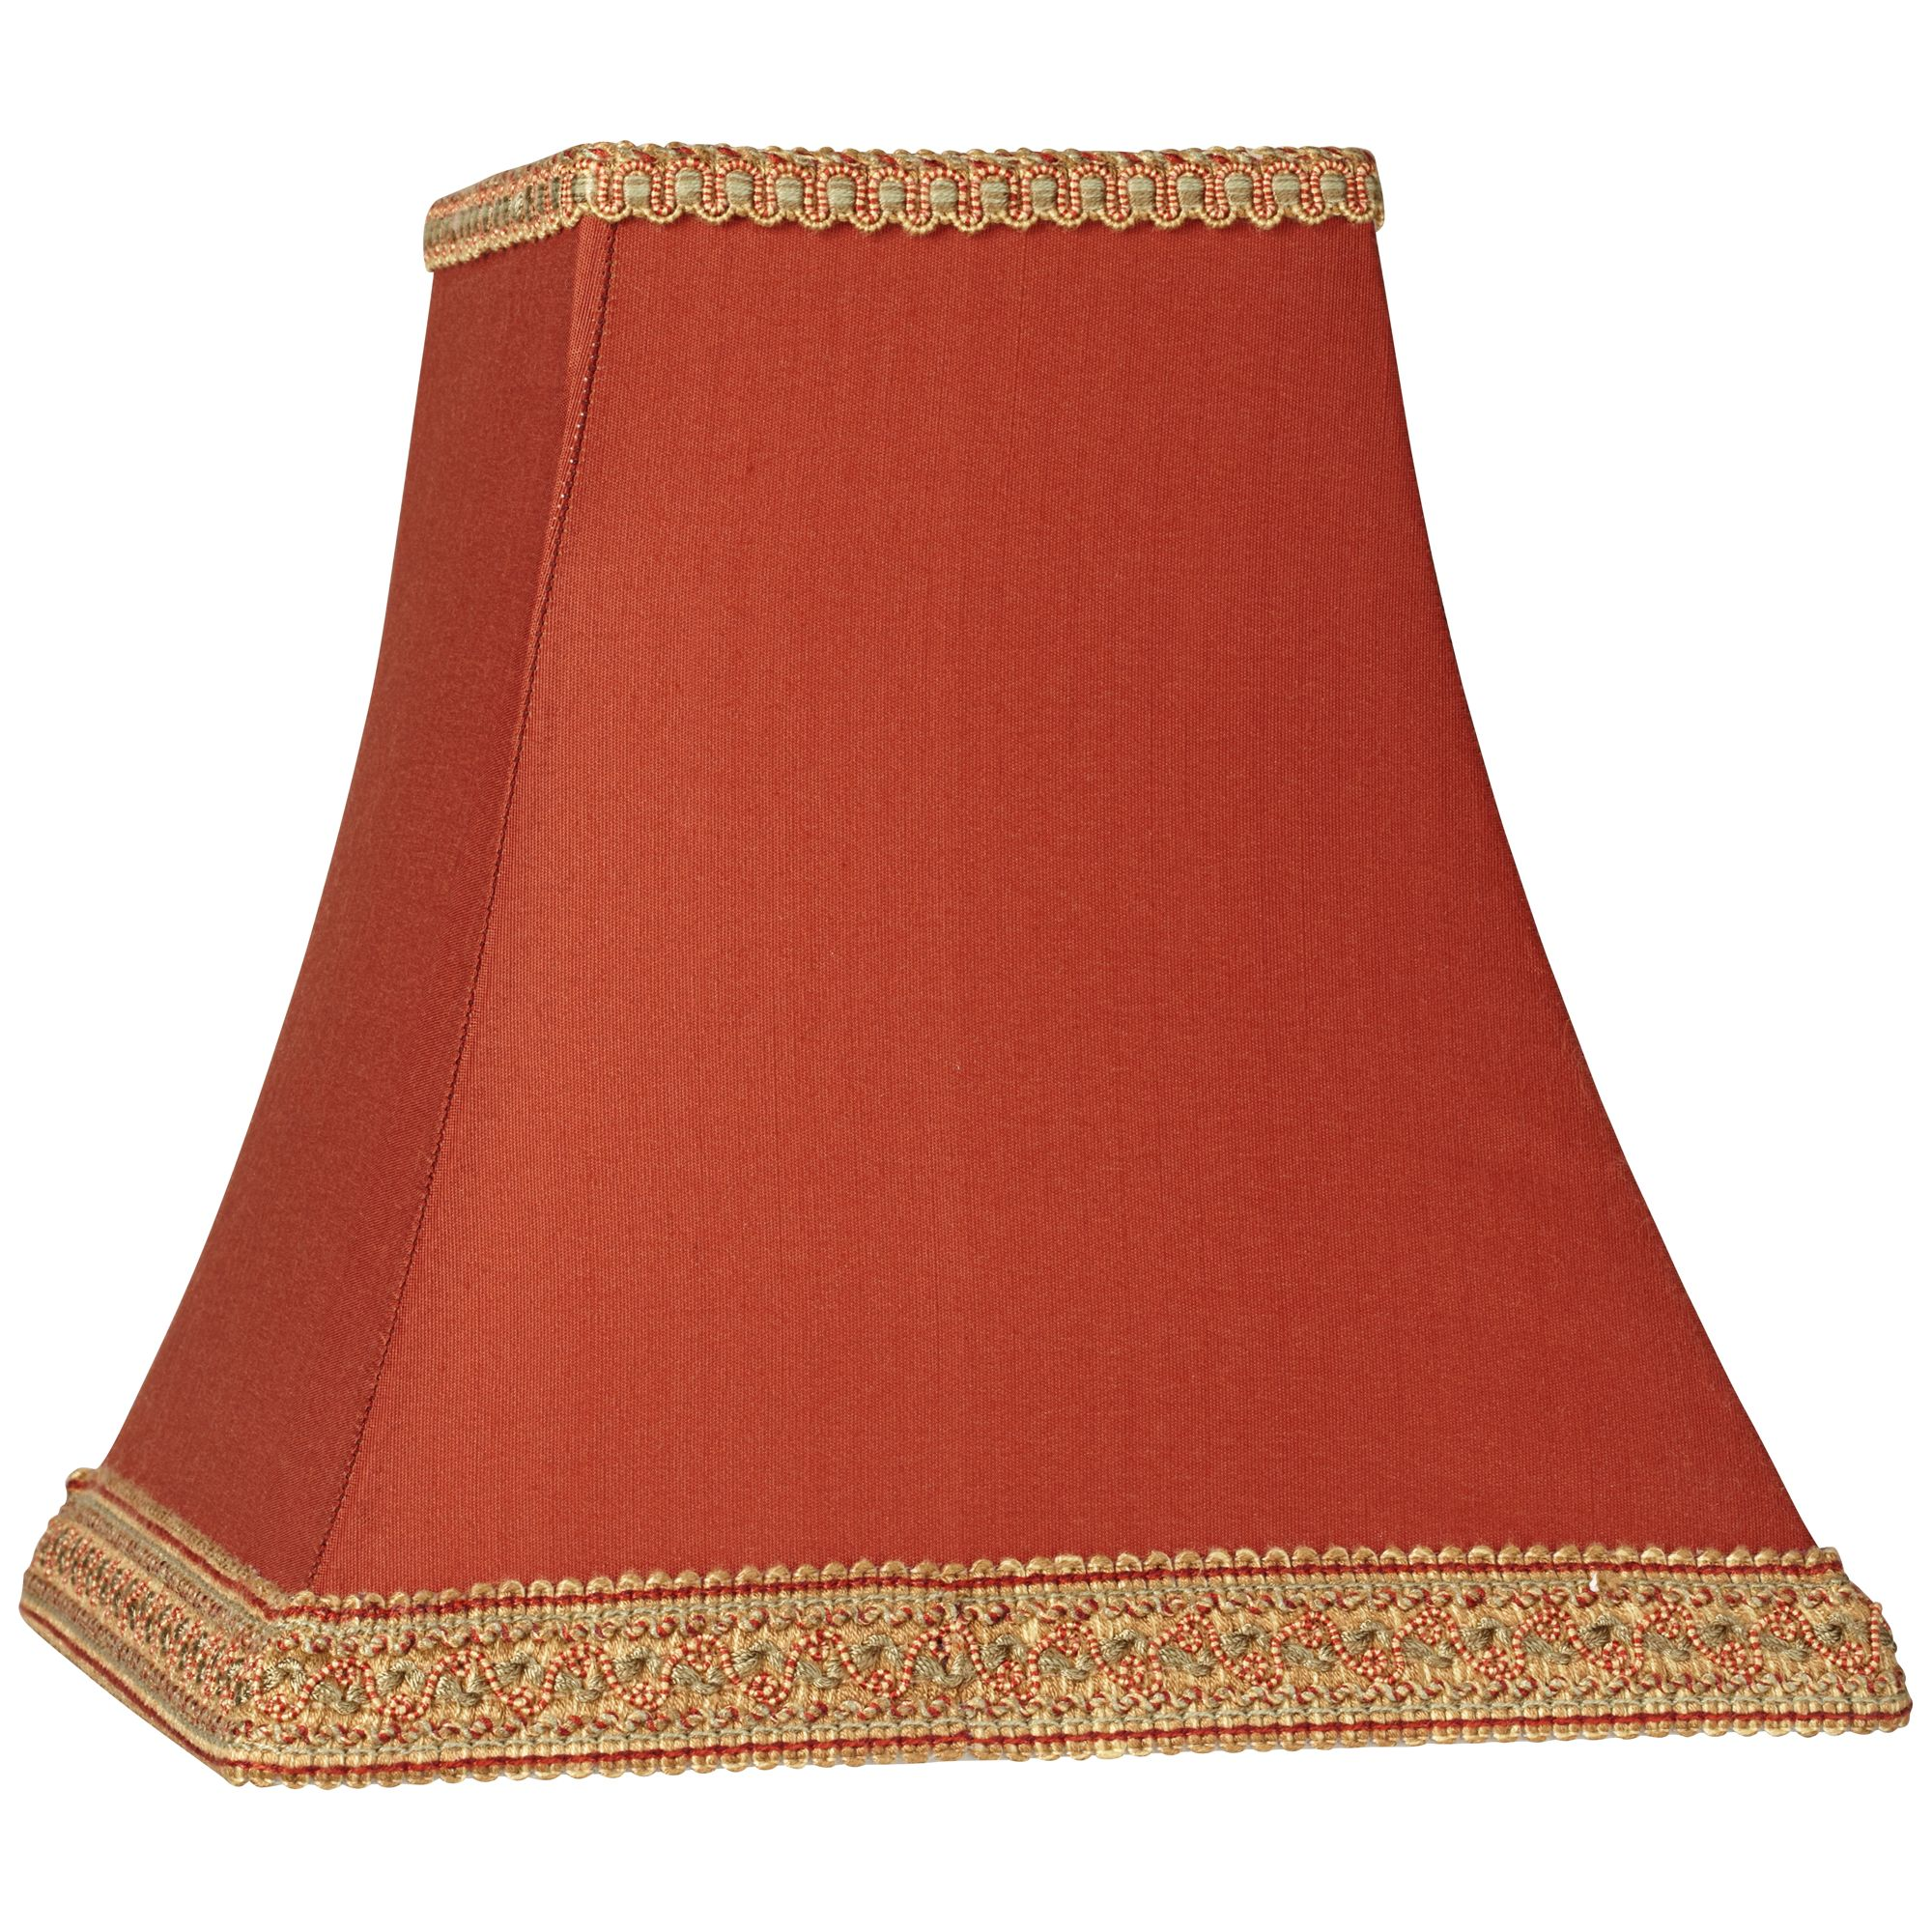 Springcrest Rust Square Sided Lamp Shade 5x10x9 (Spider)